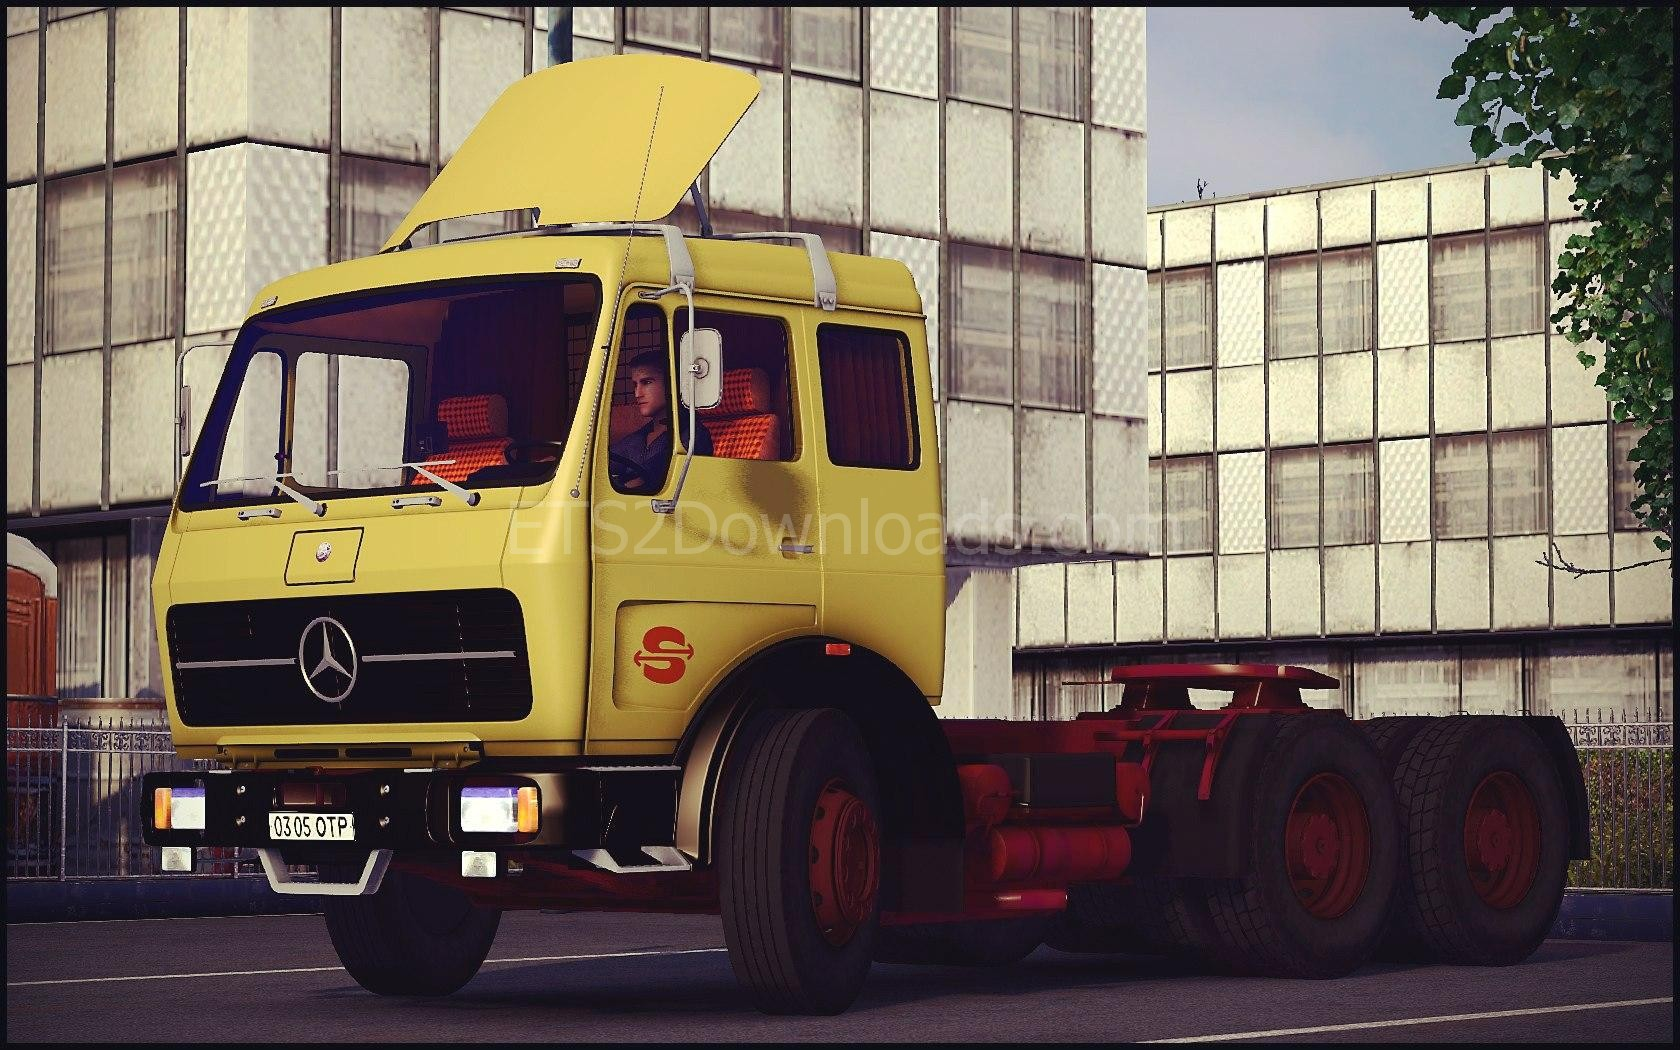 mercedes-benz-1632-ets2-2